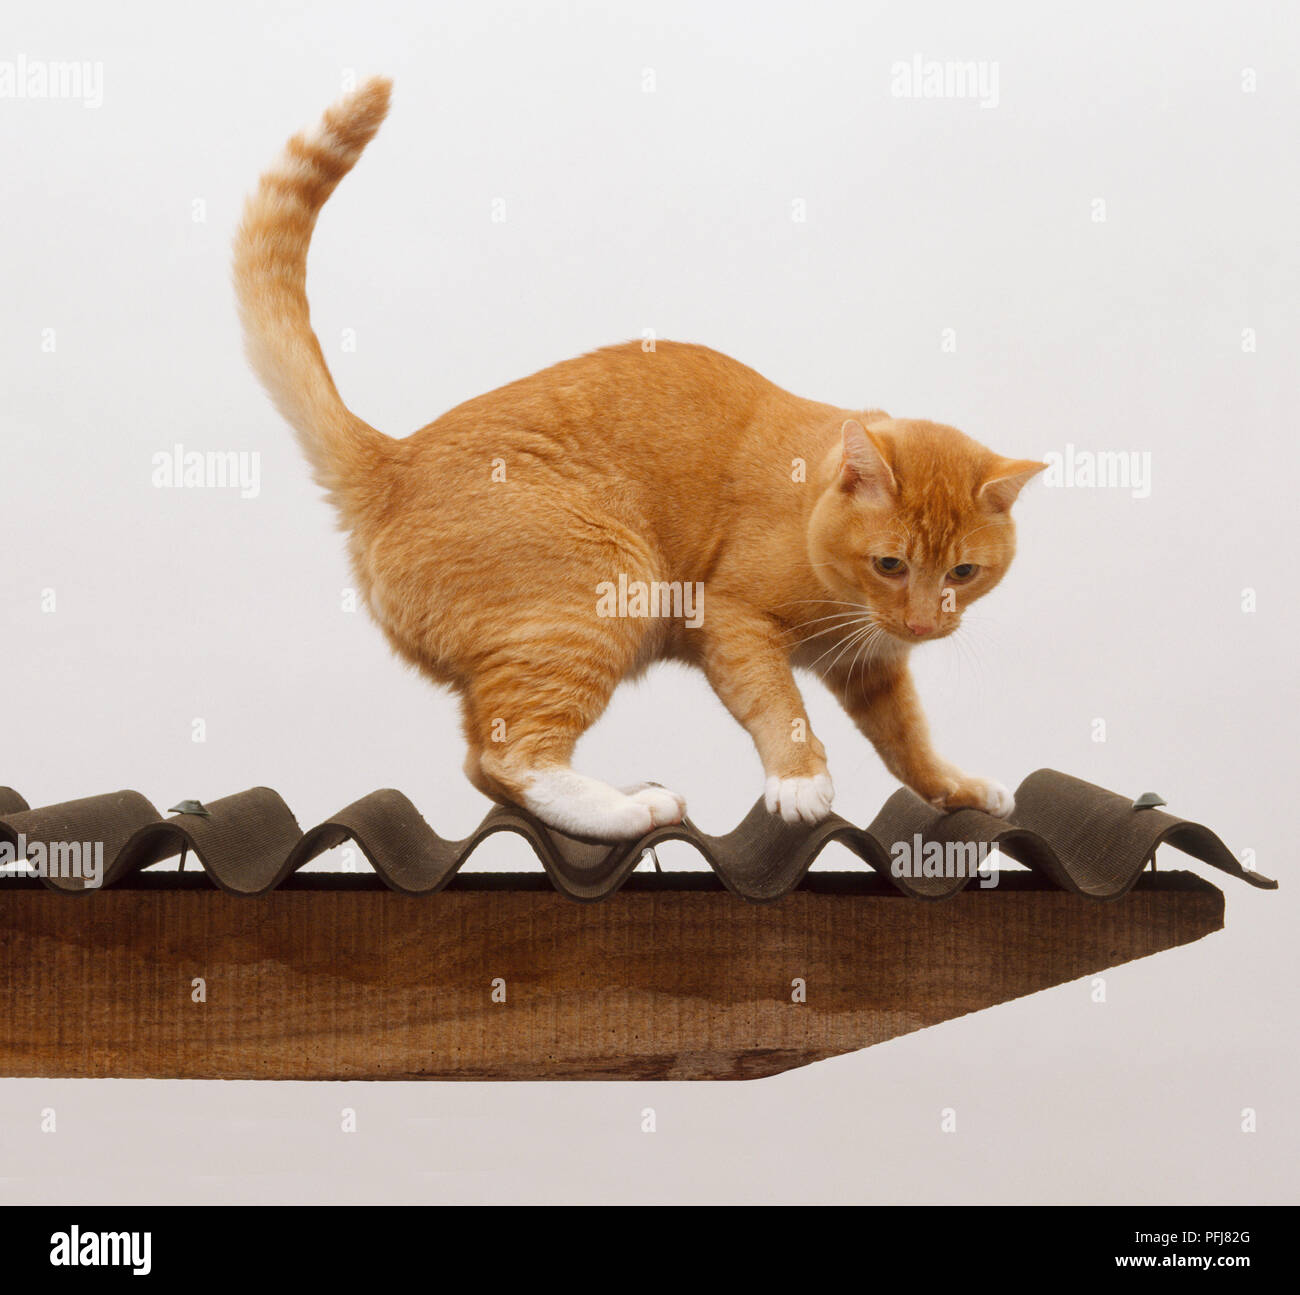 Ginger Tabby Cat (felis catus catus) standing with arched back on corrugated iron roof, side view - Stock Image